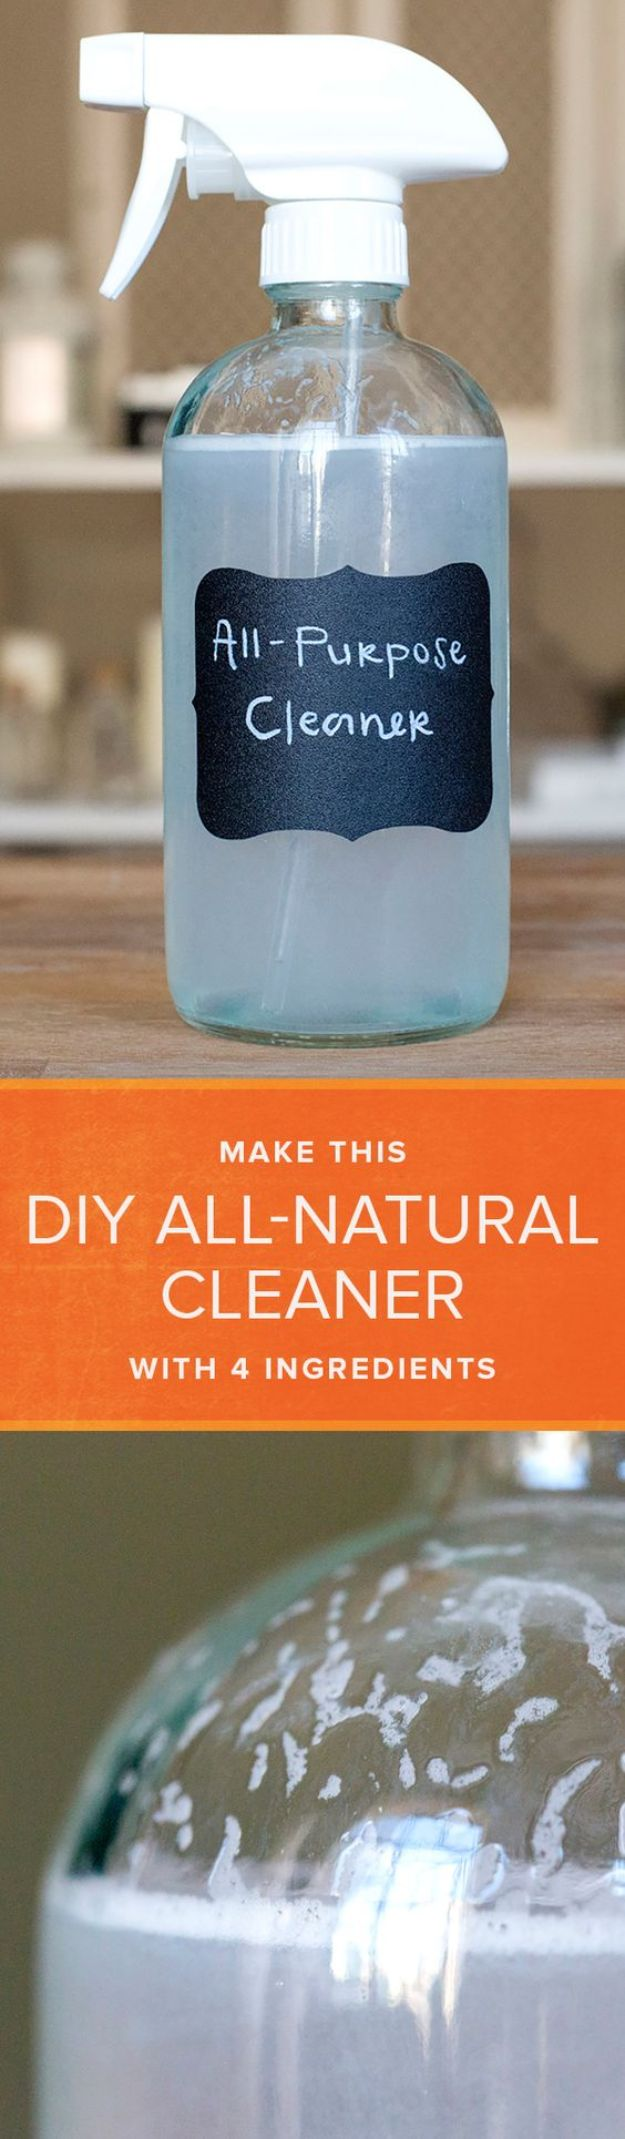 Homemade Cleaning Products - Multi Purpose Cleaner - DIY Cleaners With Recipe and Tutorial - Make DIY Natural and ll Purpose Cleaner Recipes for Home With Vinegar, Essential Oils